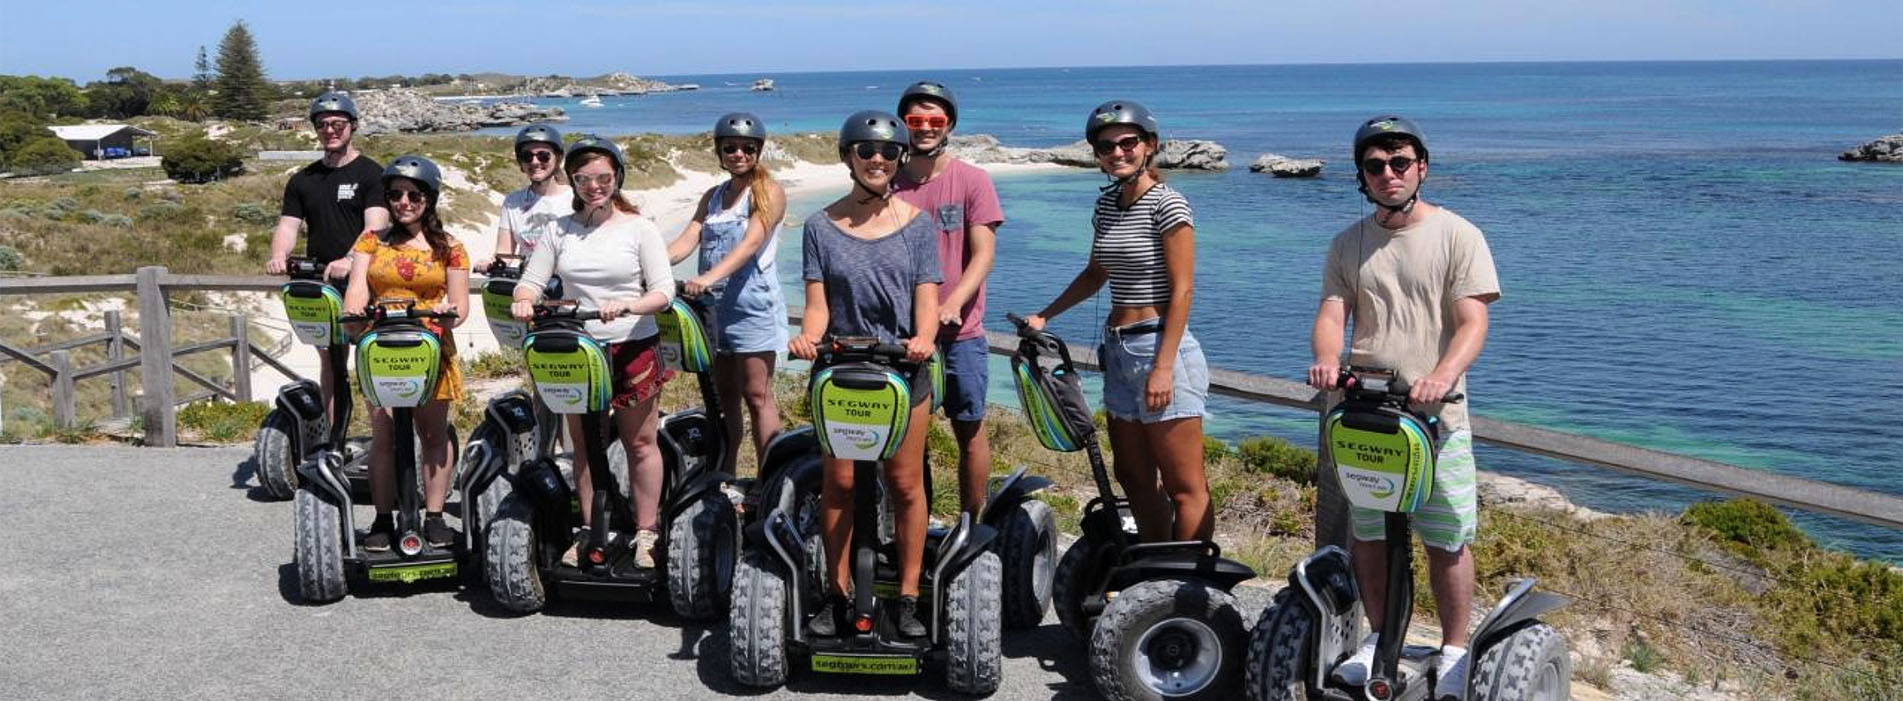 ROTTEST ISLAND SEGWAY tours people